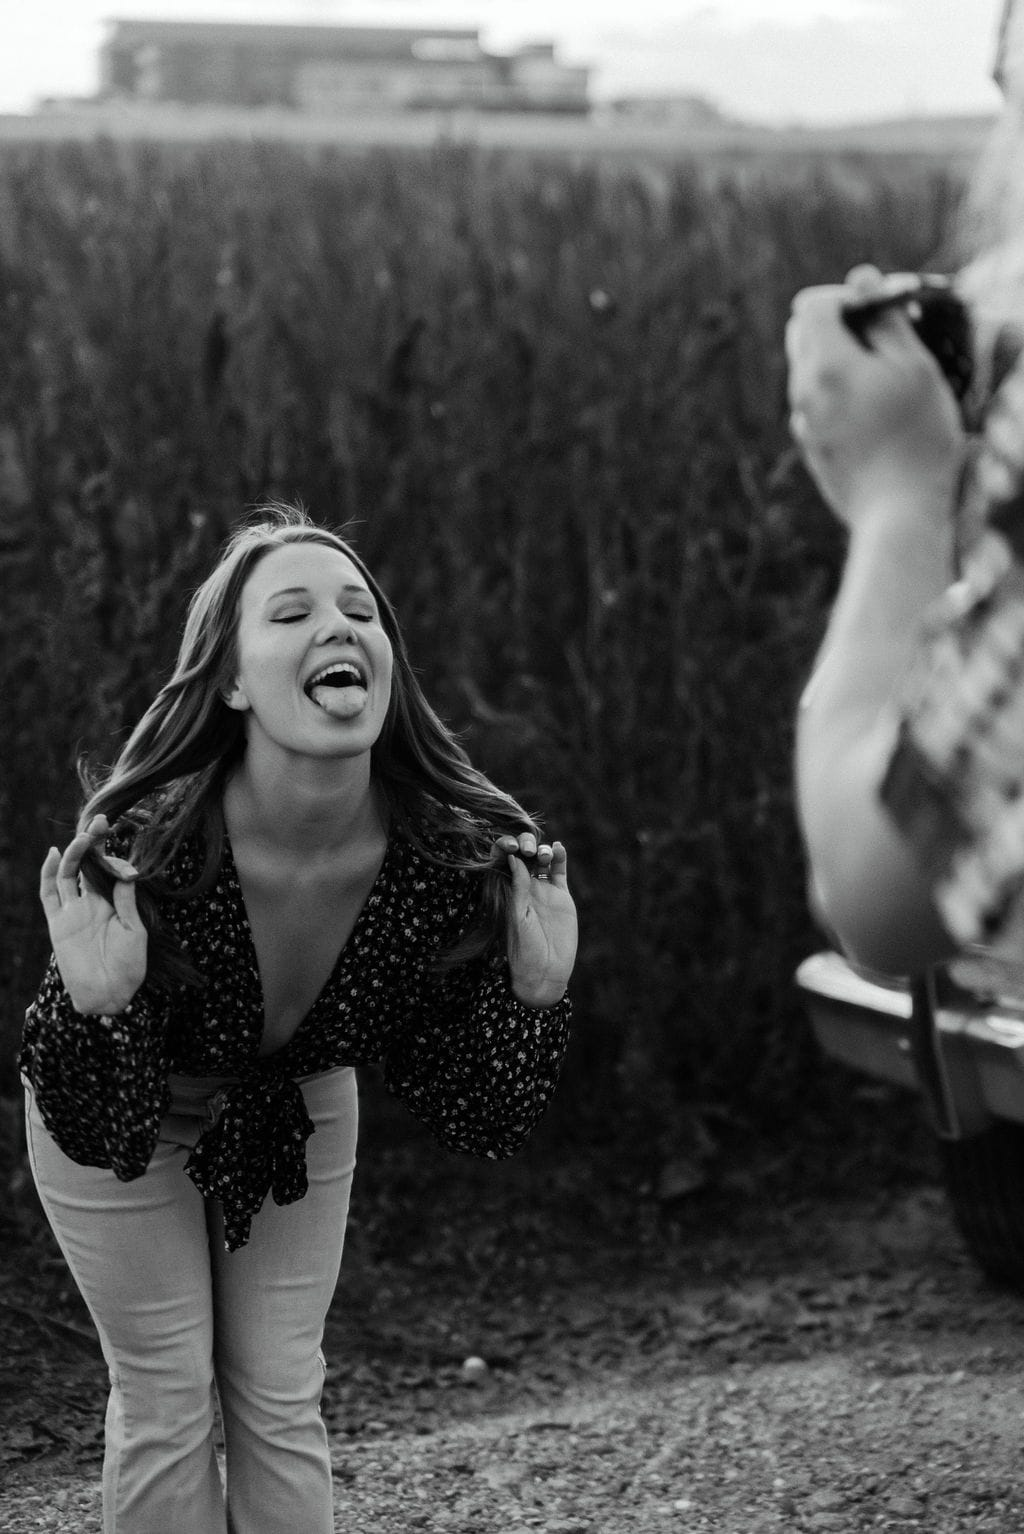 Taking a photo with the Fuji x100v at denver engagement session